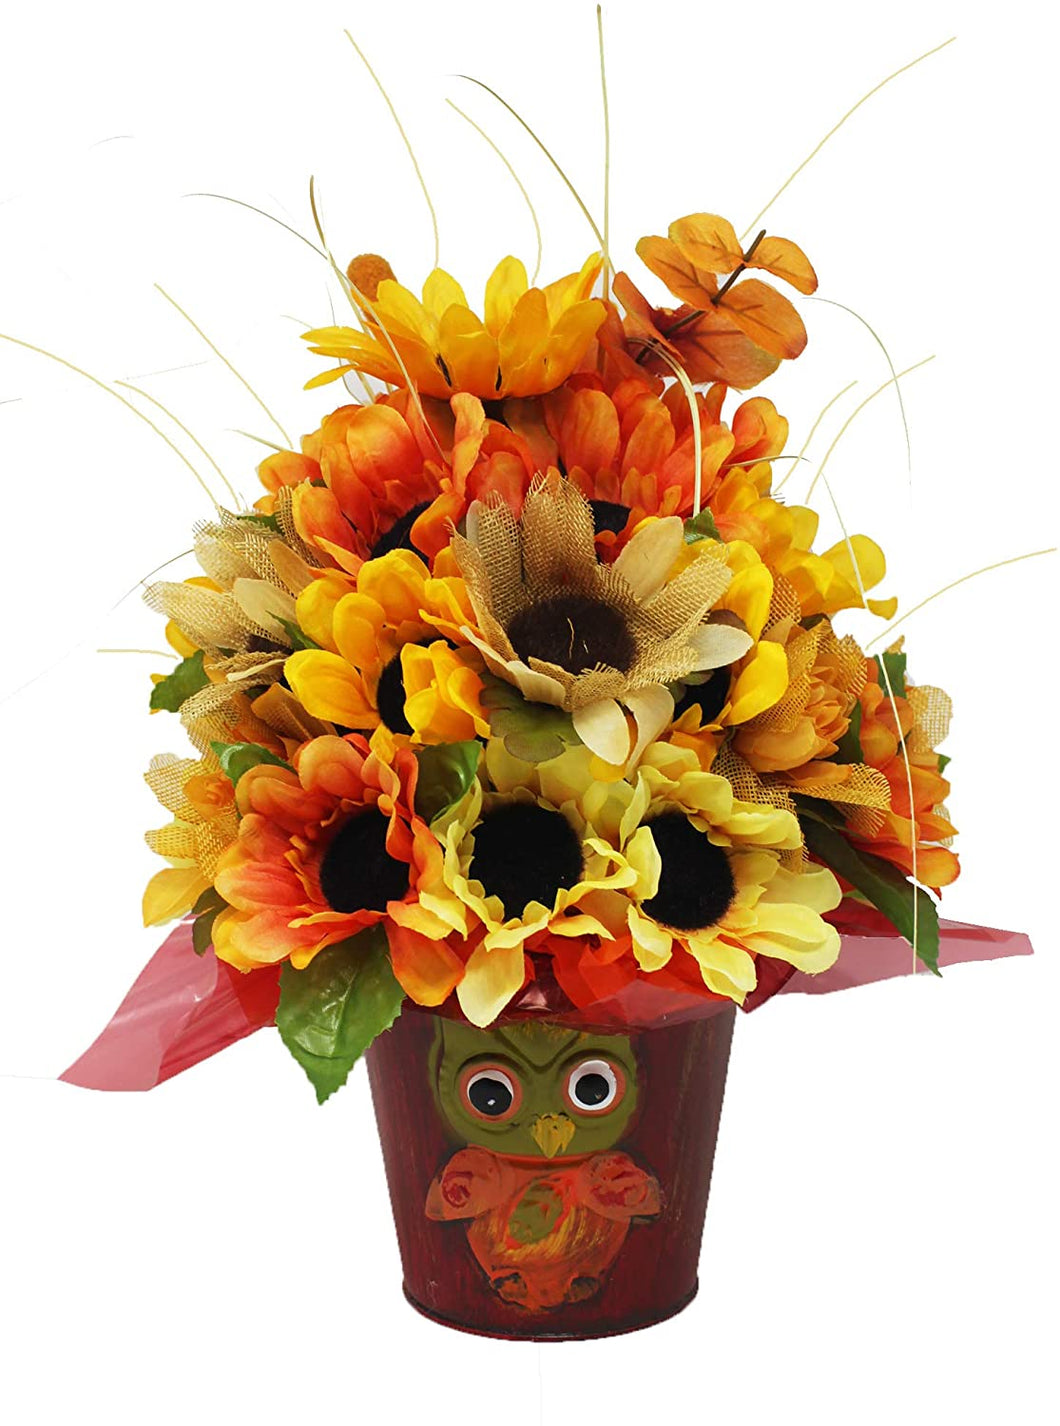 Fall silk bouquet arranged in decorative pail with owl